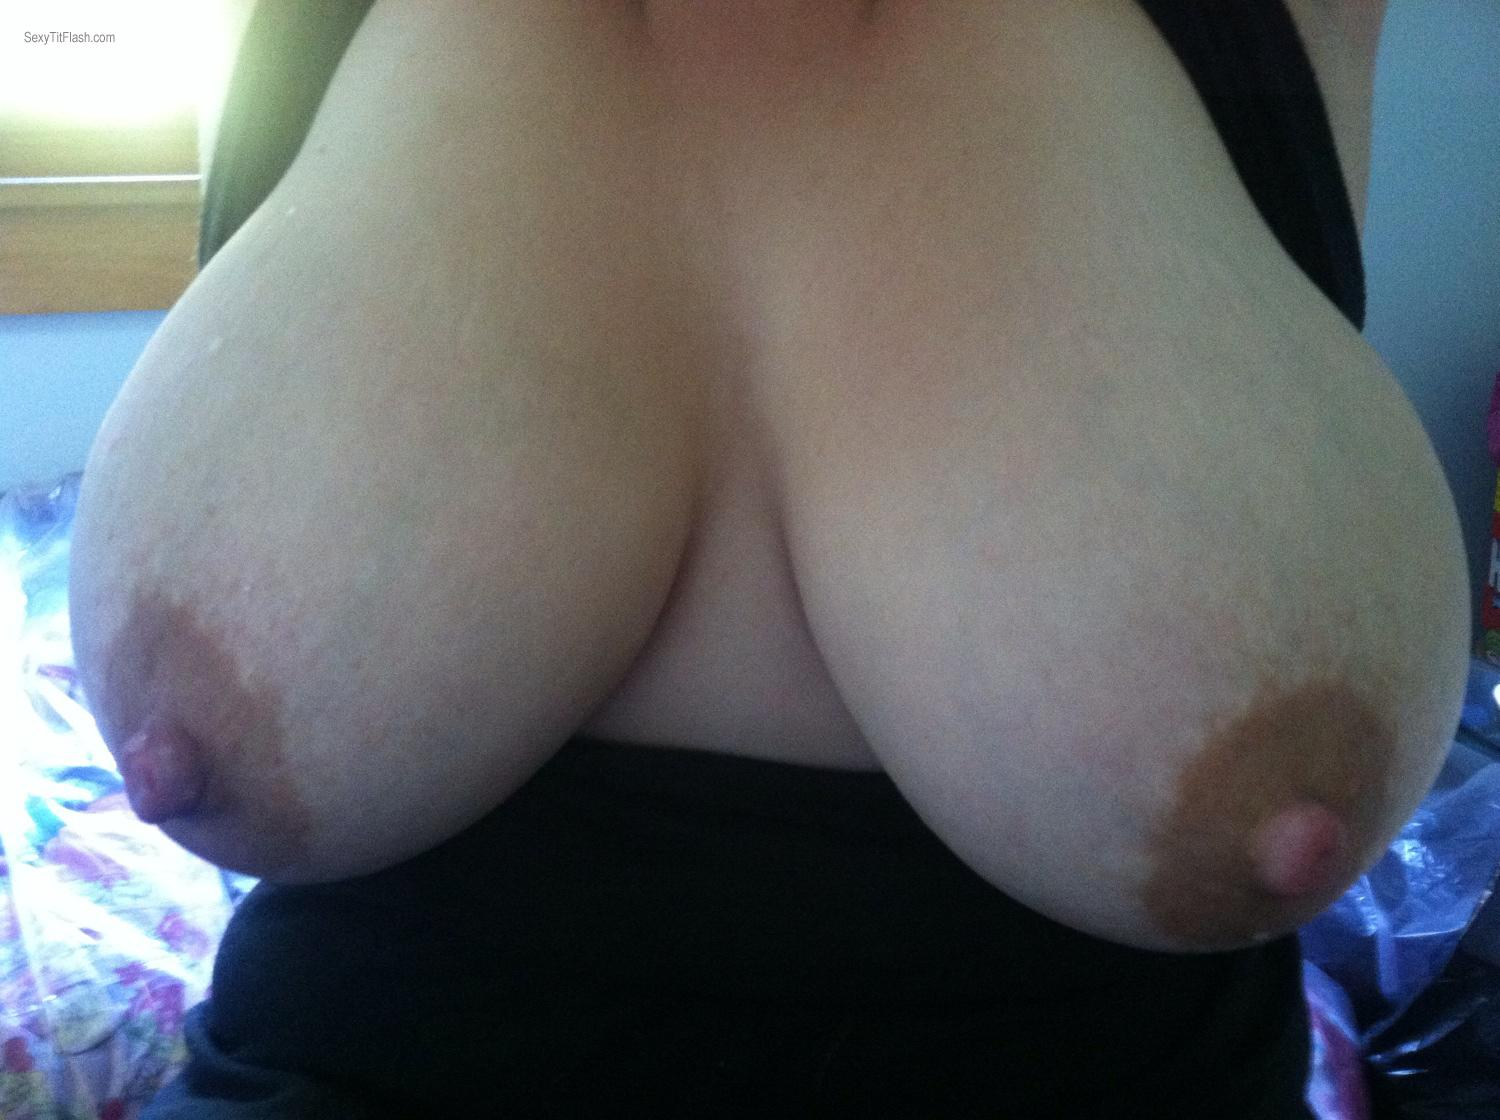 Tit Flash: My Very Big Tits By IPhone (Selfie) - Milky Jugs from